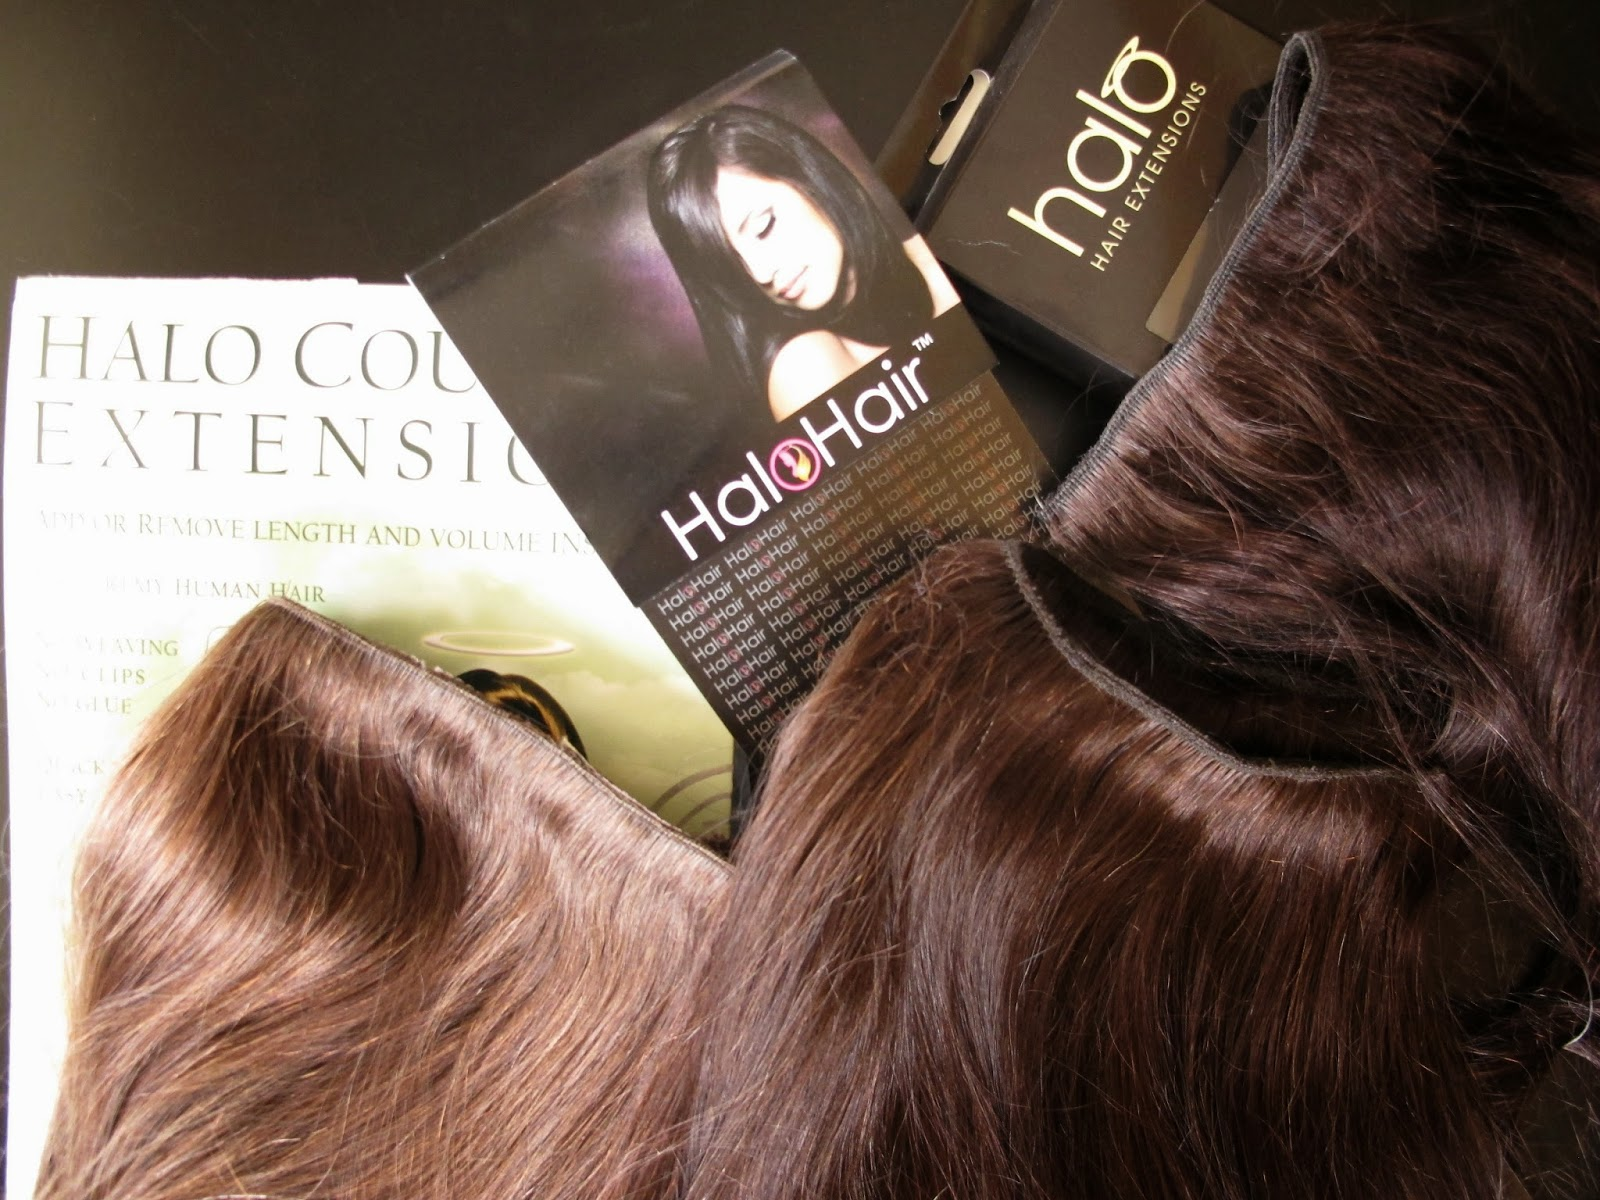 Halo Couture Hair Extensions Video Triple Weft Hair Extensions